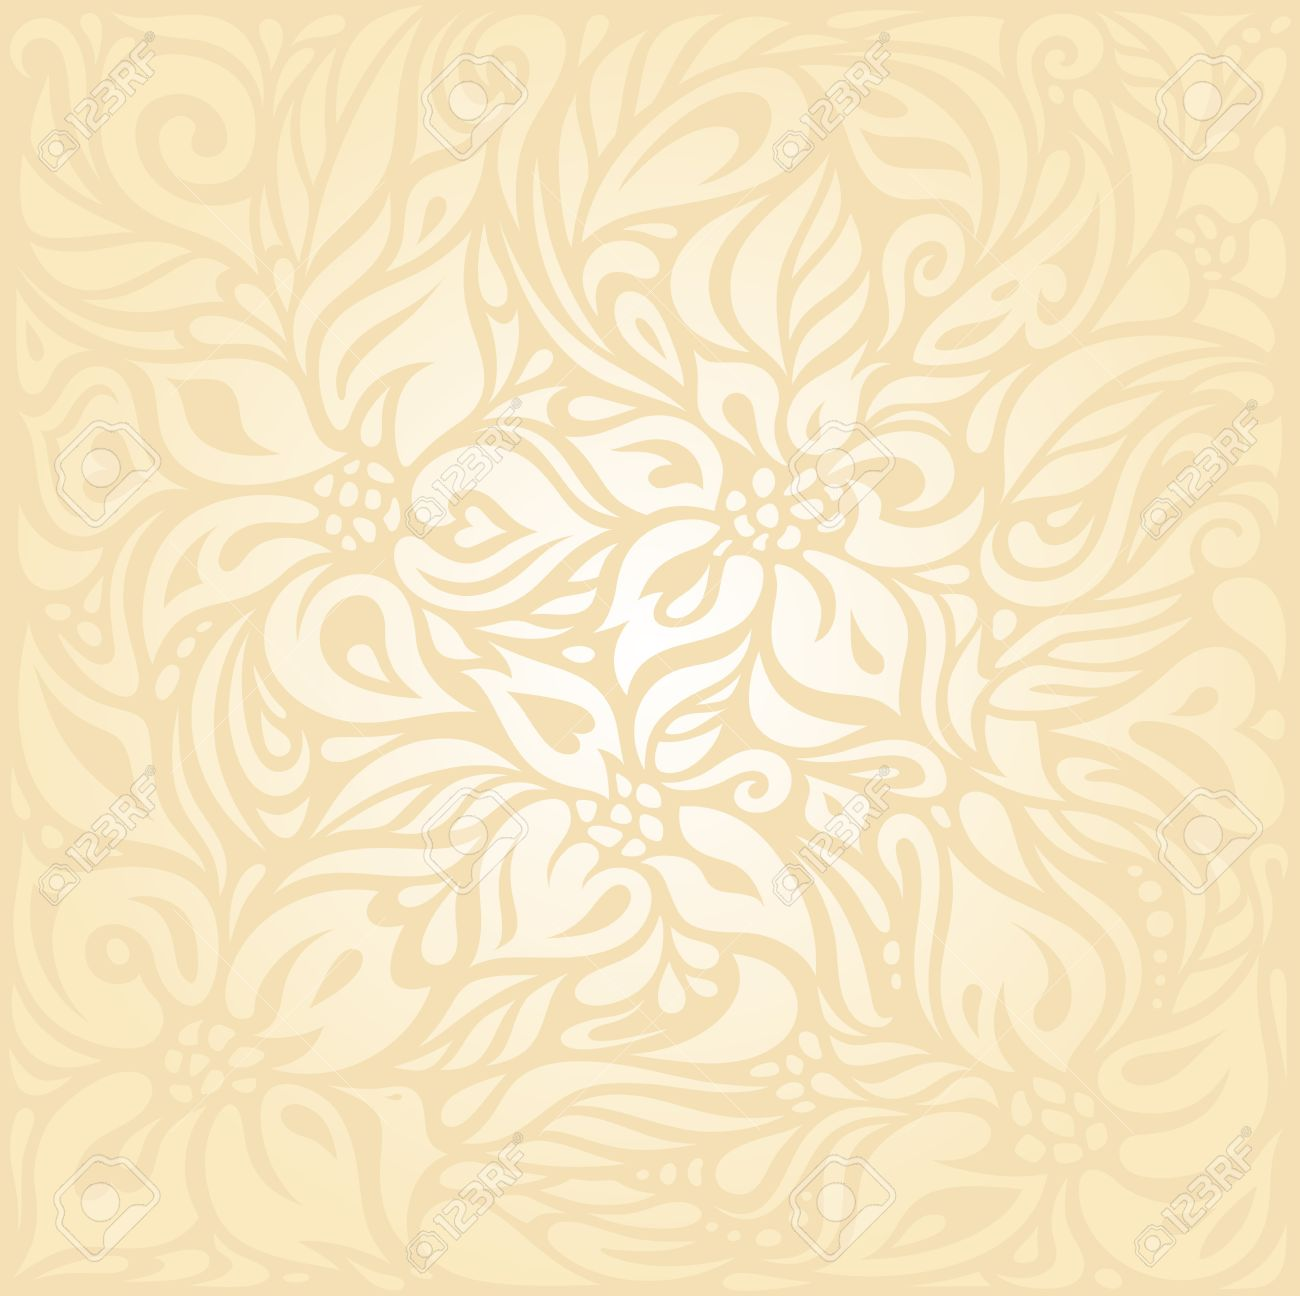 Floral Retro Wedding Pale Peach Invitation Background Design Royalty